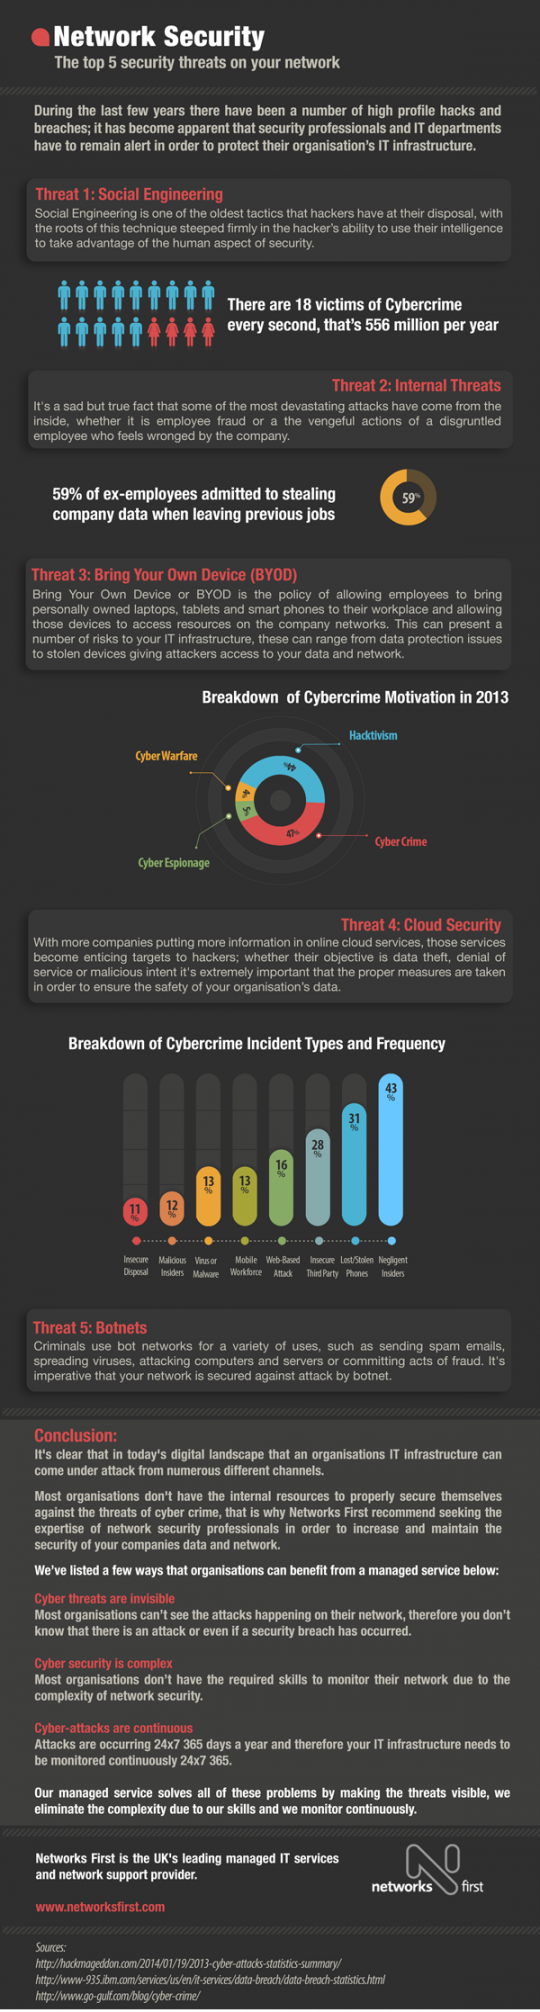 Network Security: Top 5 Security Threats on Your Network